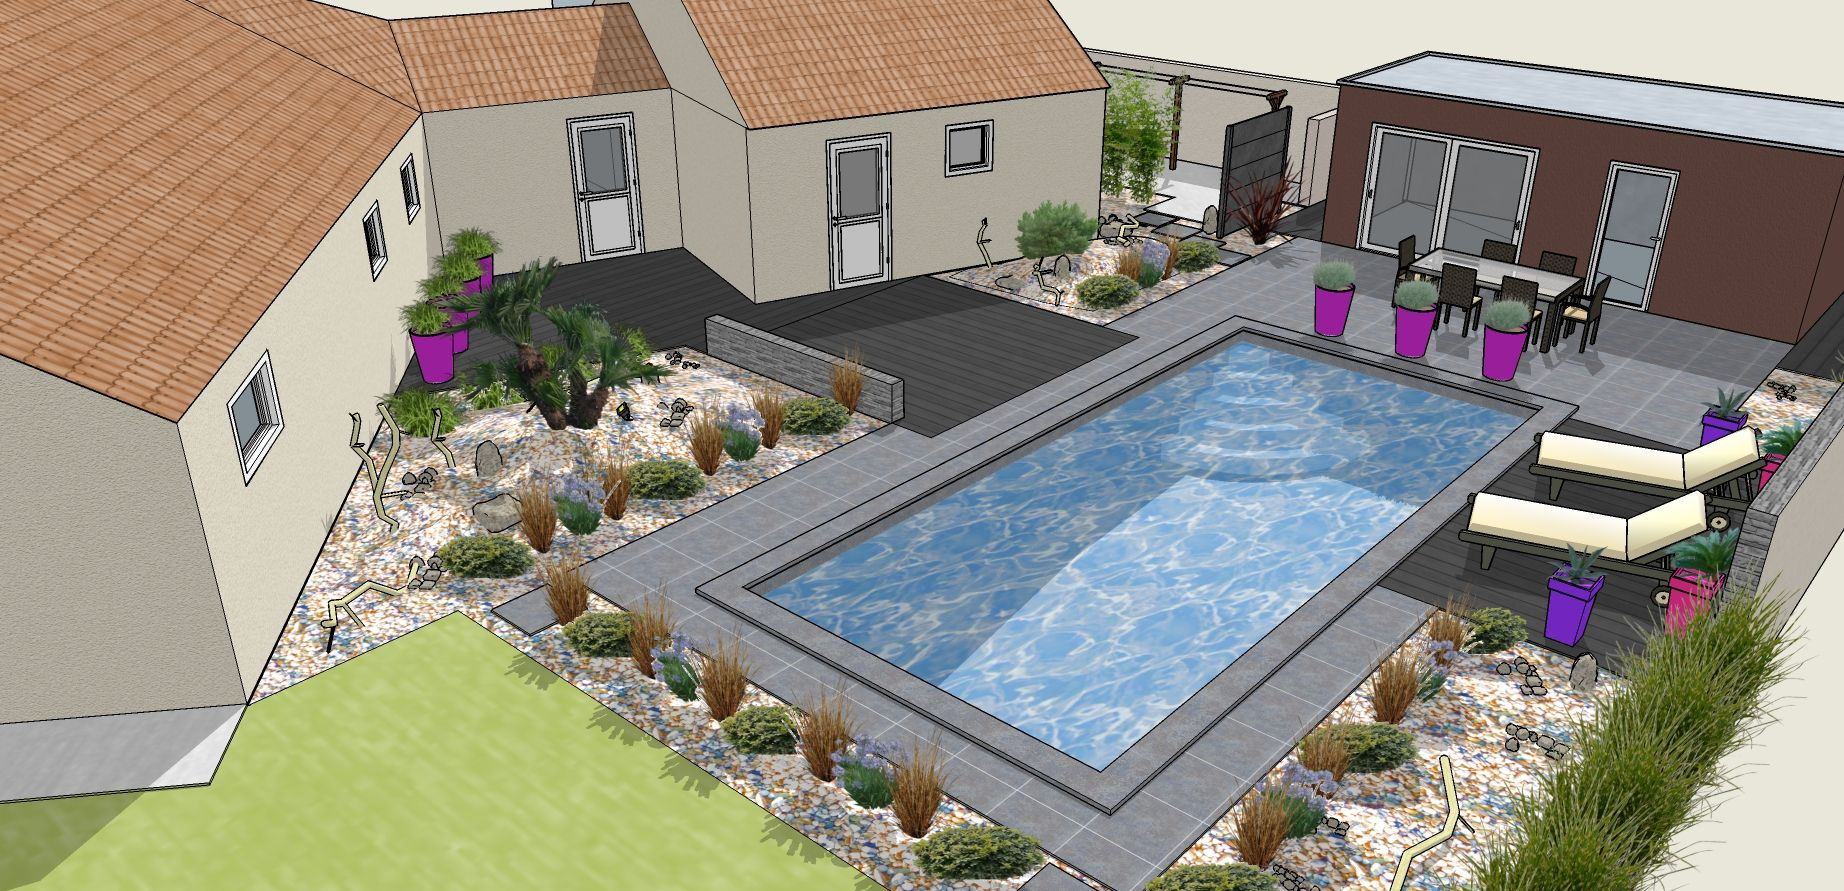 Am nagement paysager piscine creus e contemporain - Mini pool terrasse ...